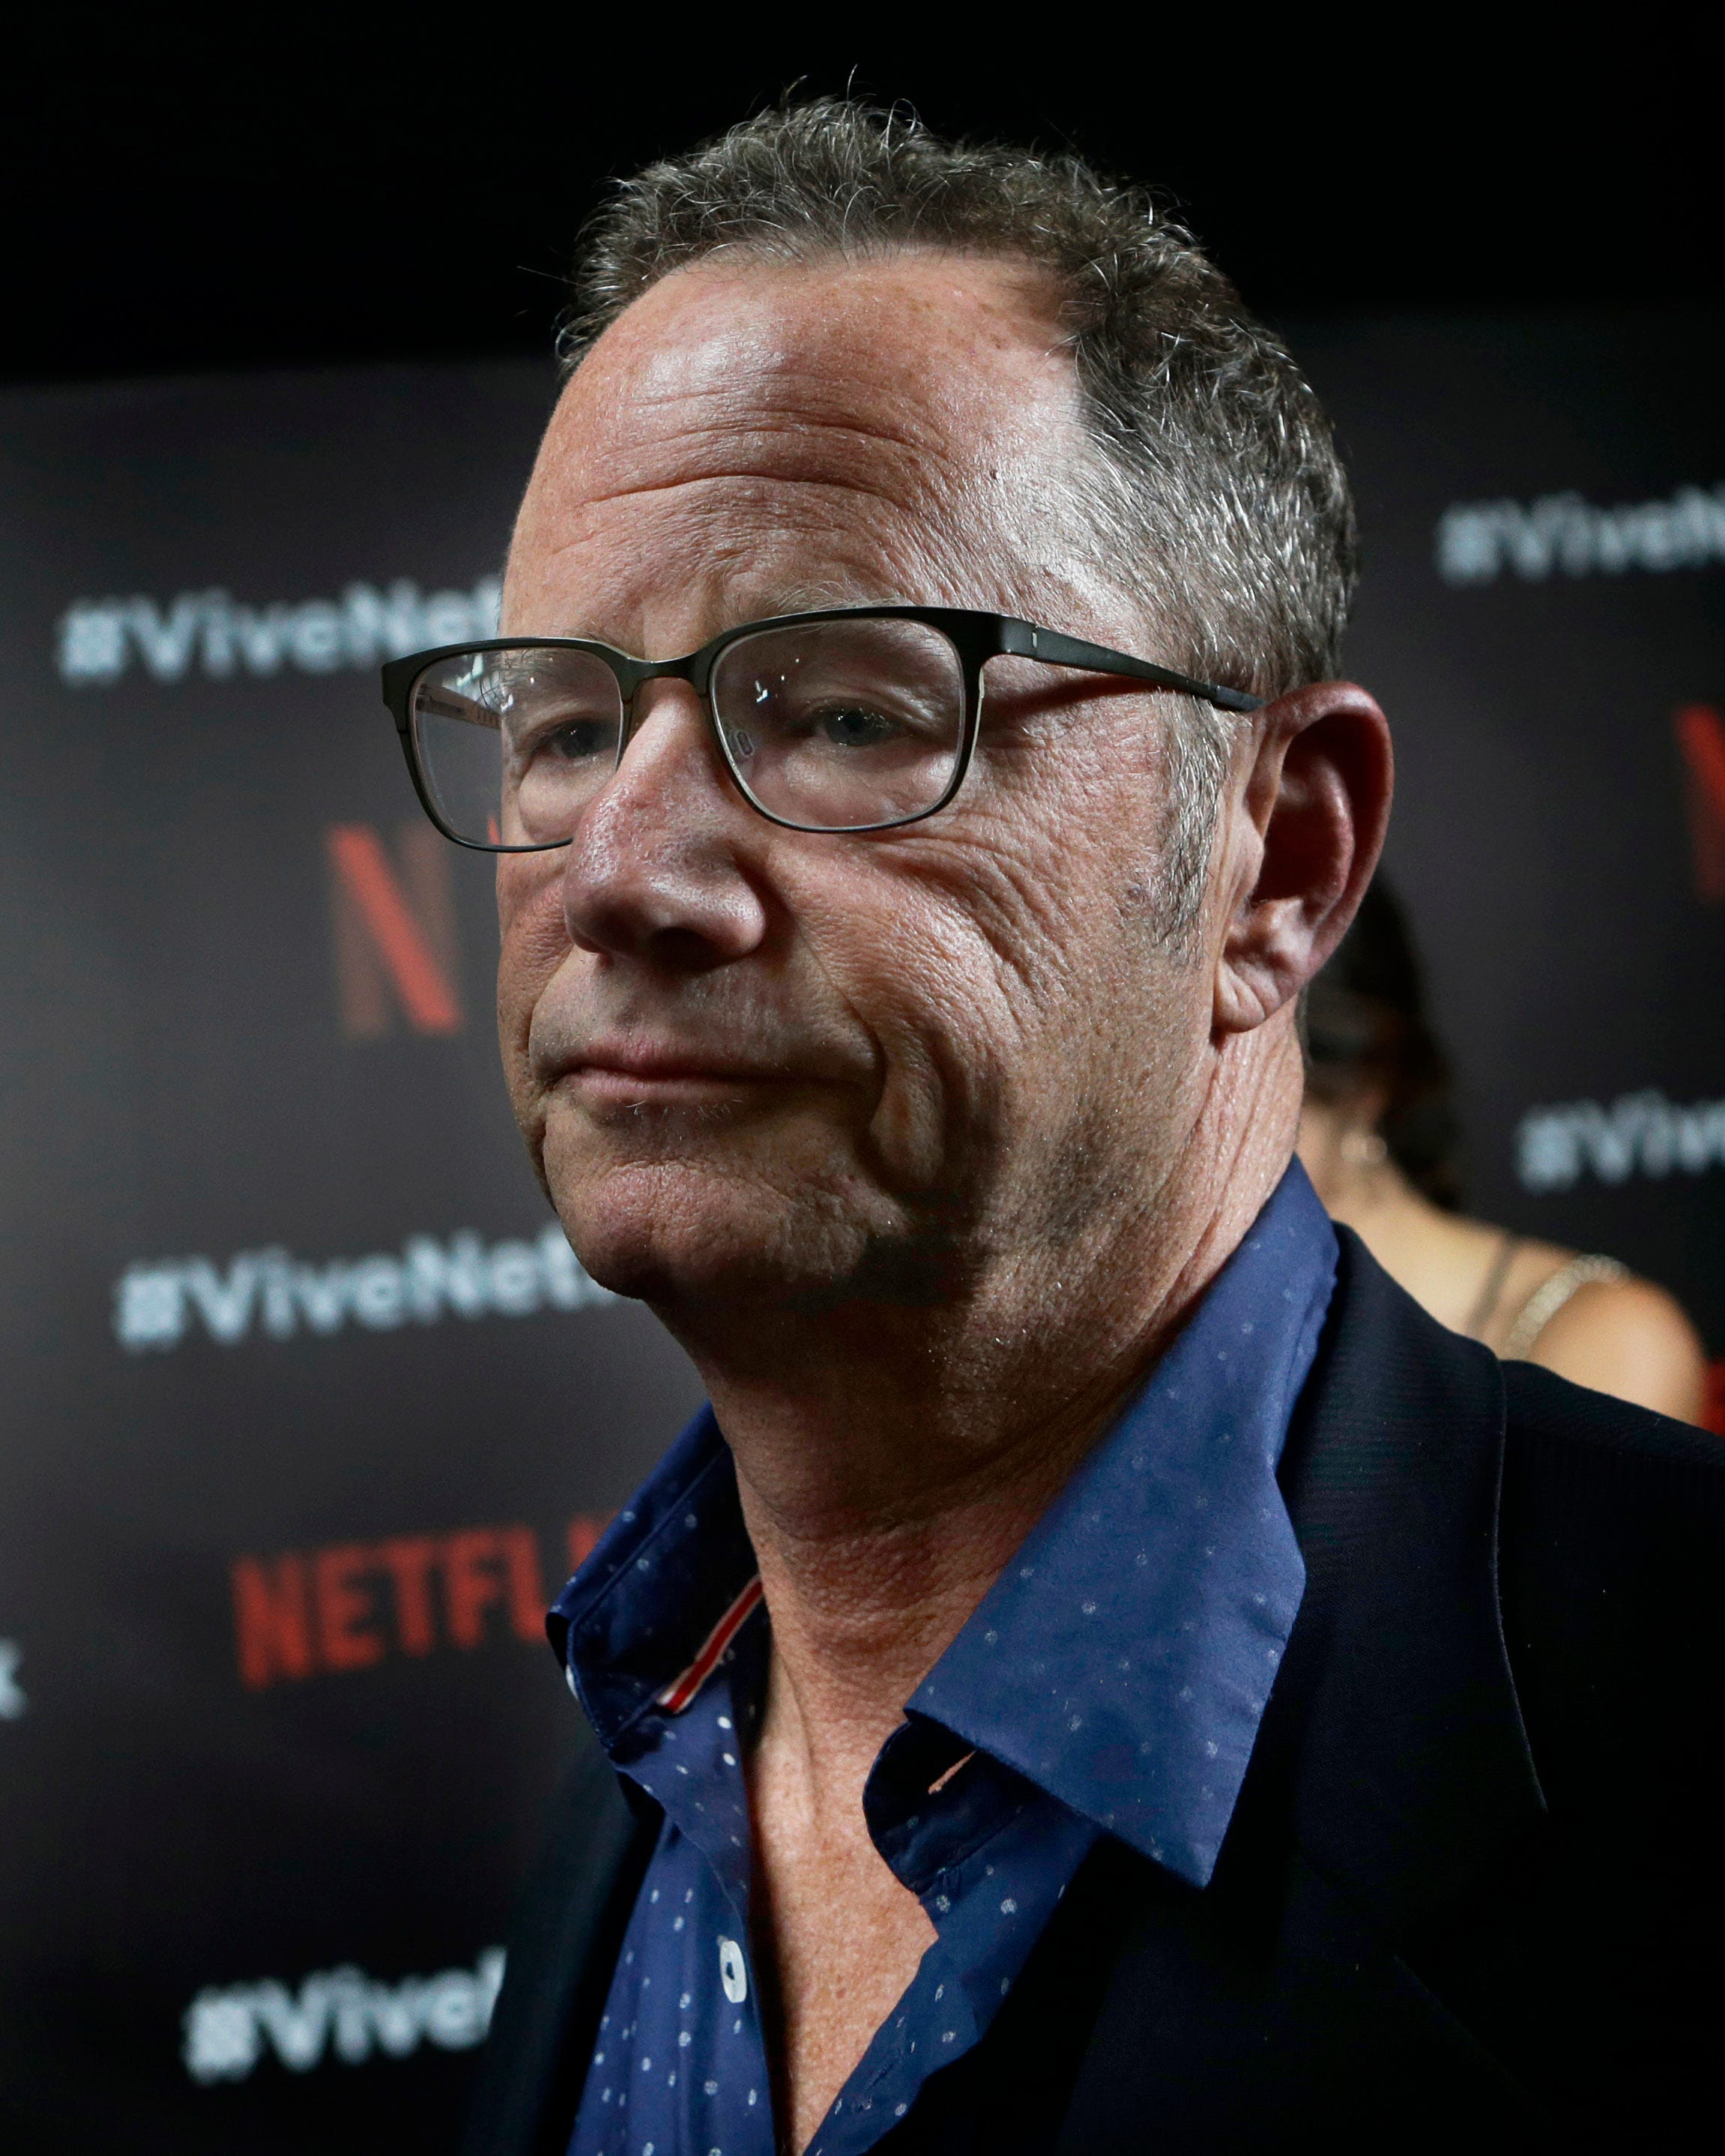 Netflix executive fired over repeated use of racial slur in front of colleagues